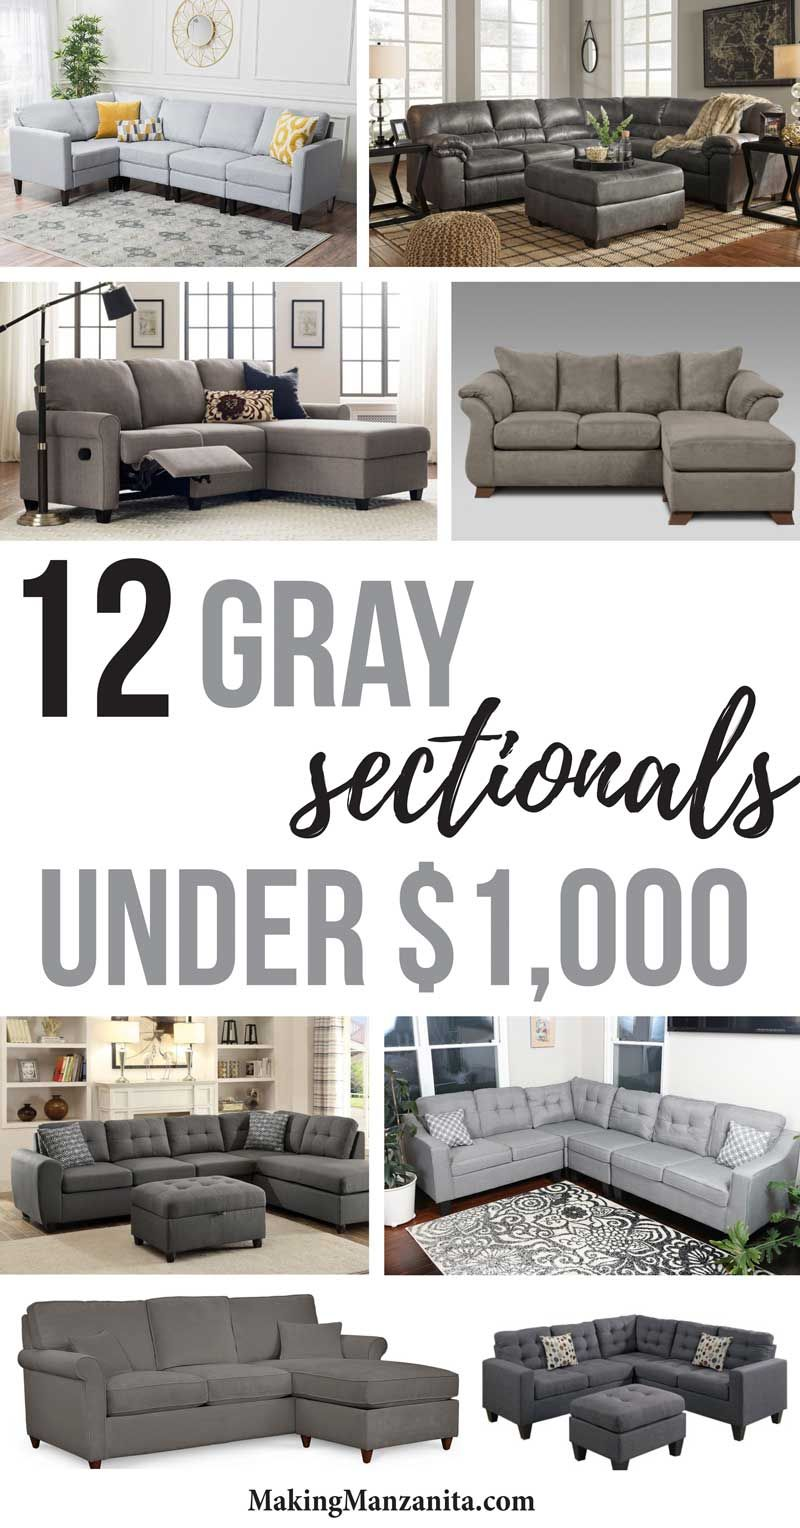 10 Cheap Sectionals Under 1000 In Gray Making Manzanita Affordable Sofa Farm House Living Room Affordable Living Rooms